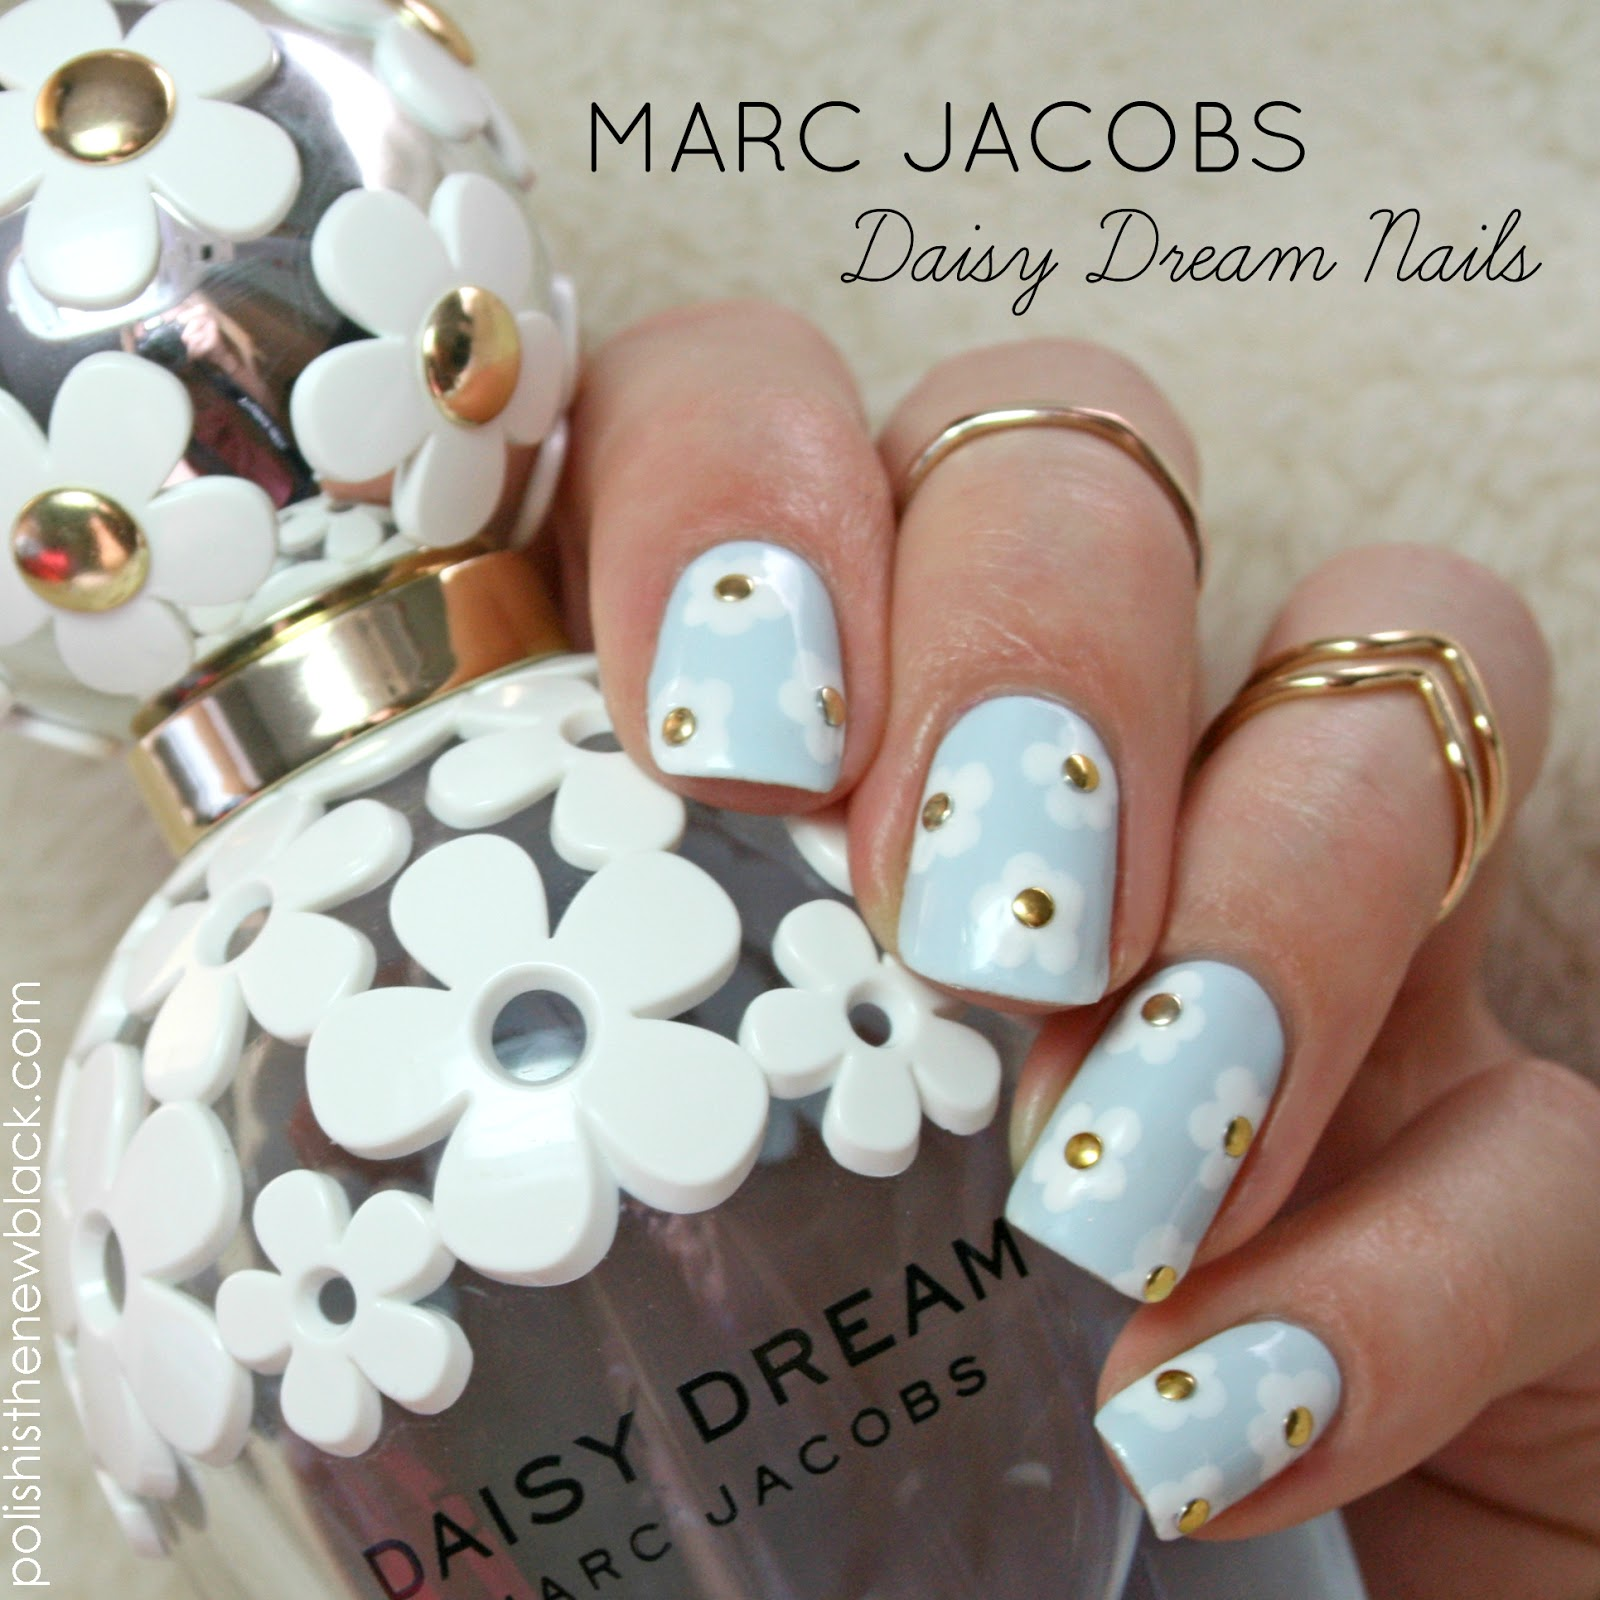 Marc Jacobs Daisy Dream Nails / Polish Is The New Black